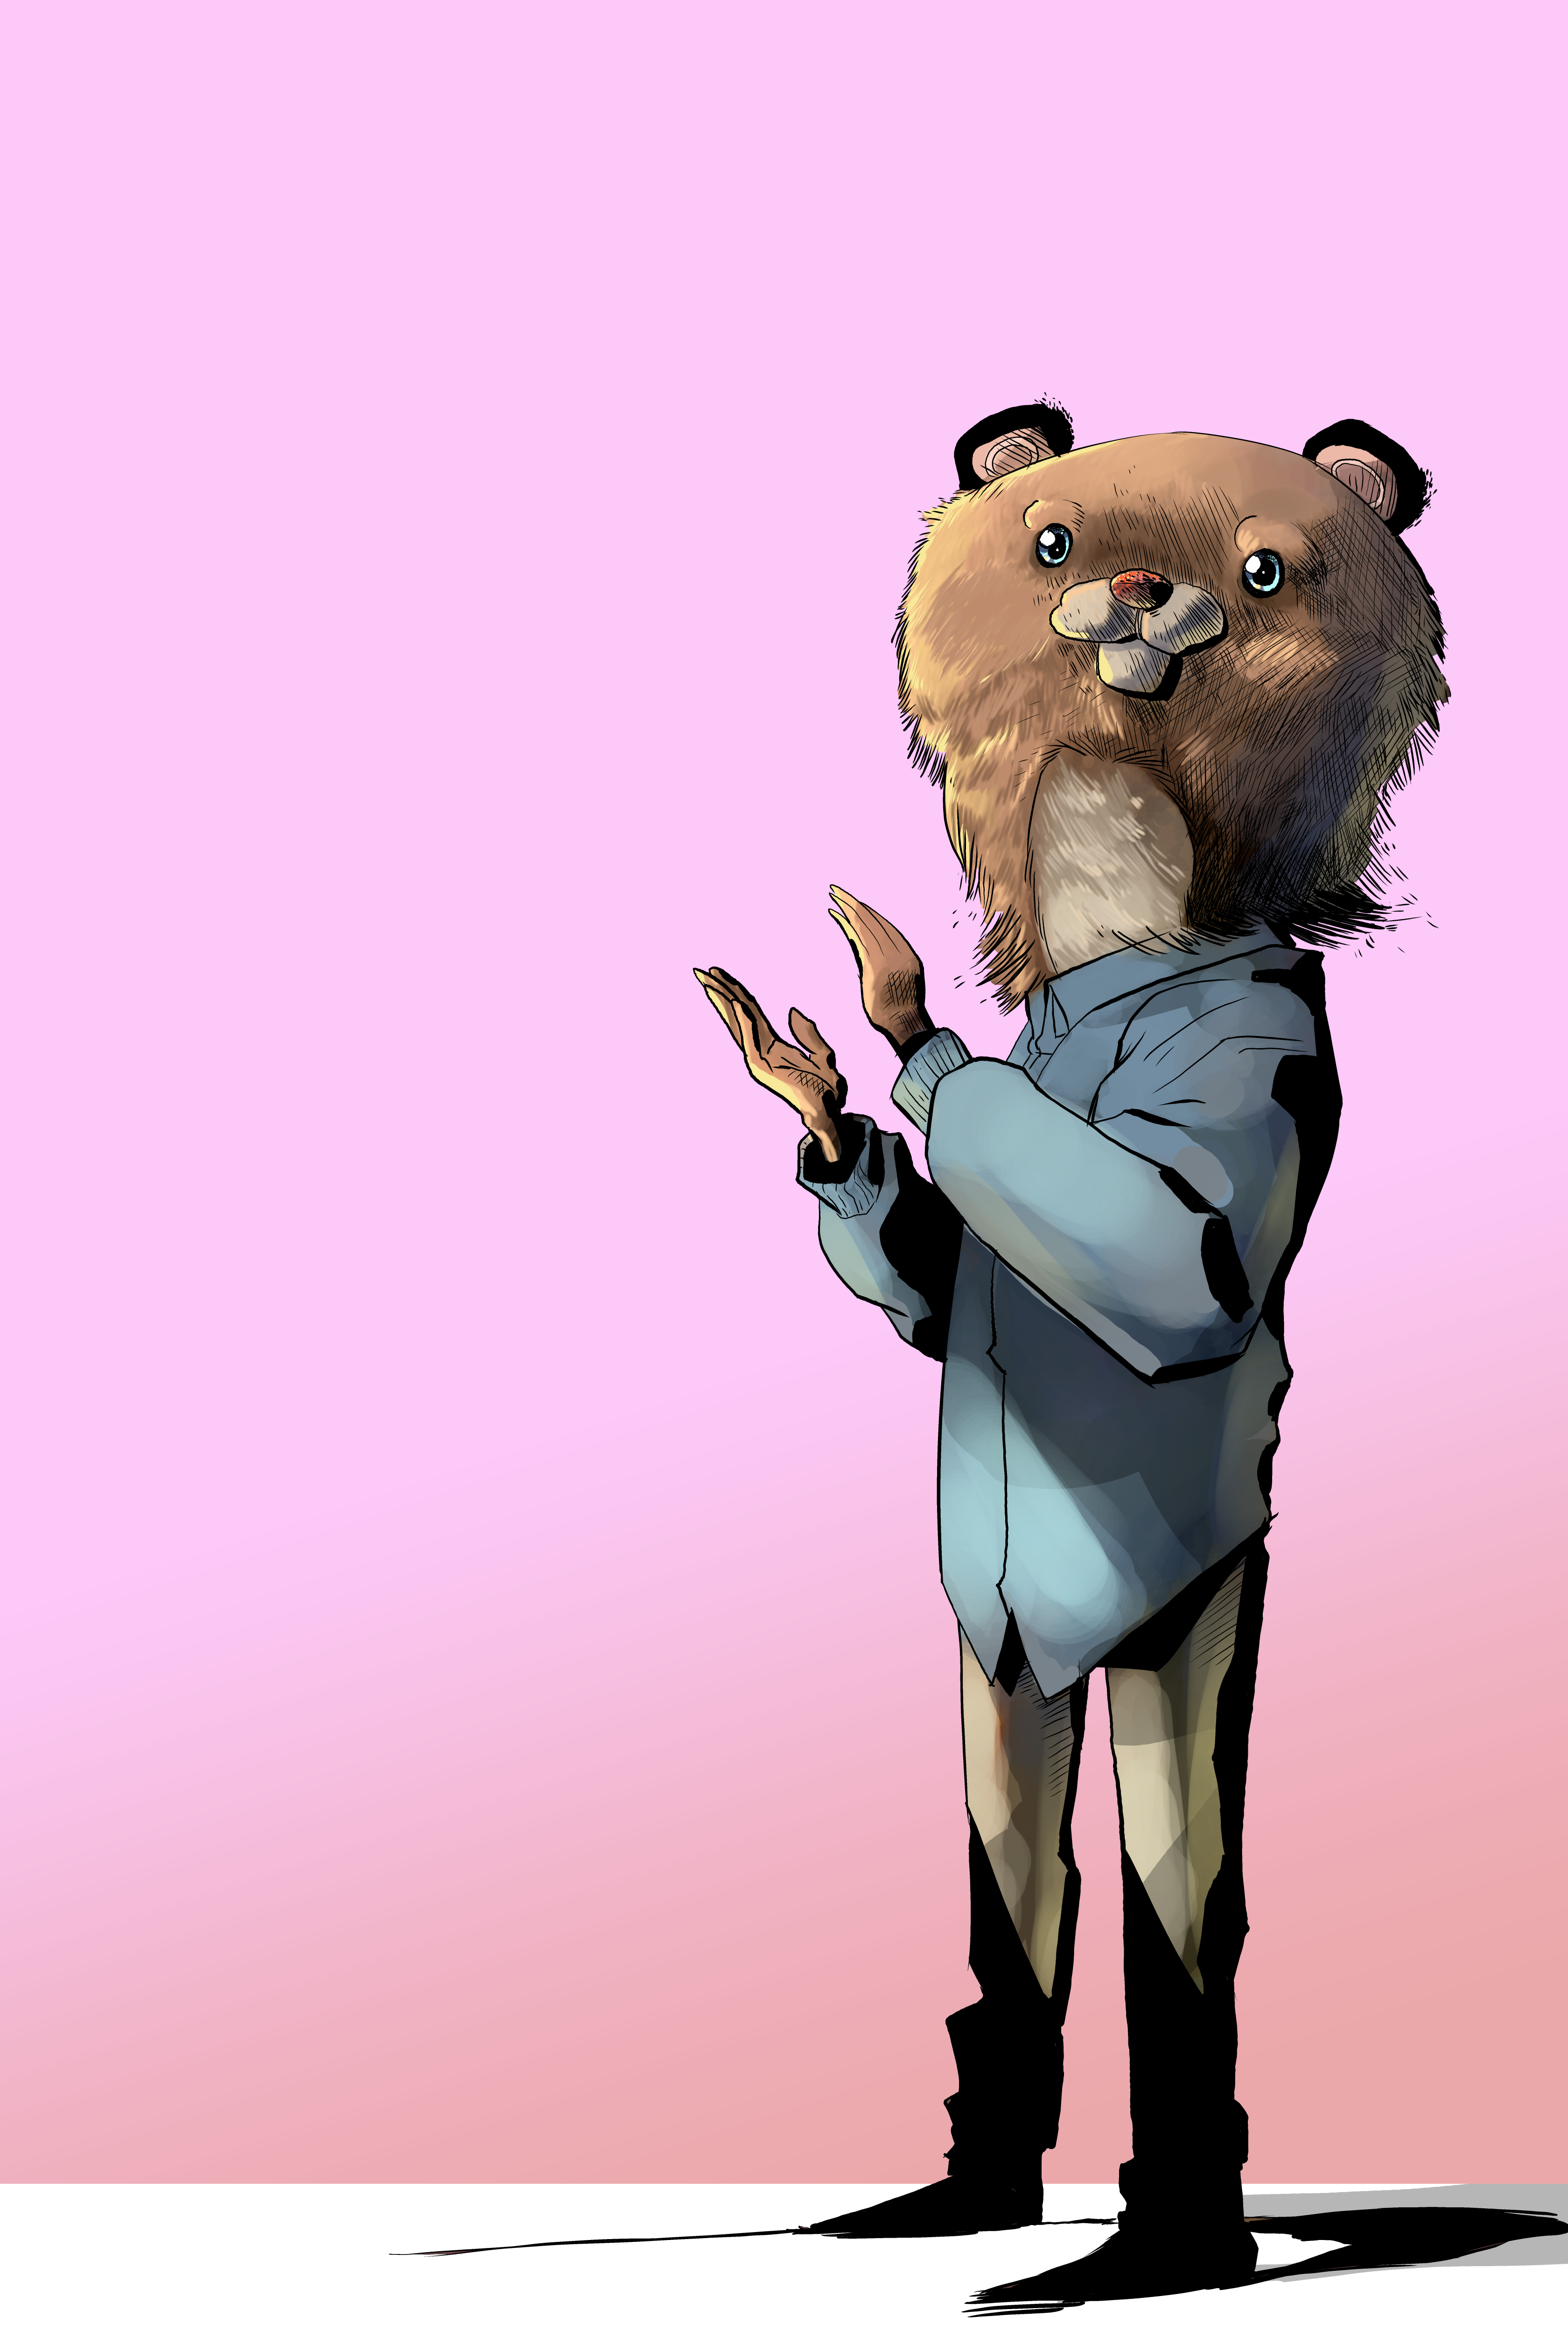 A clapping bear